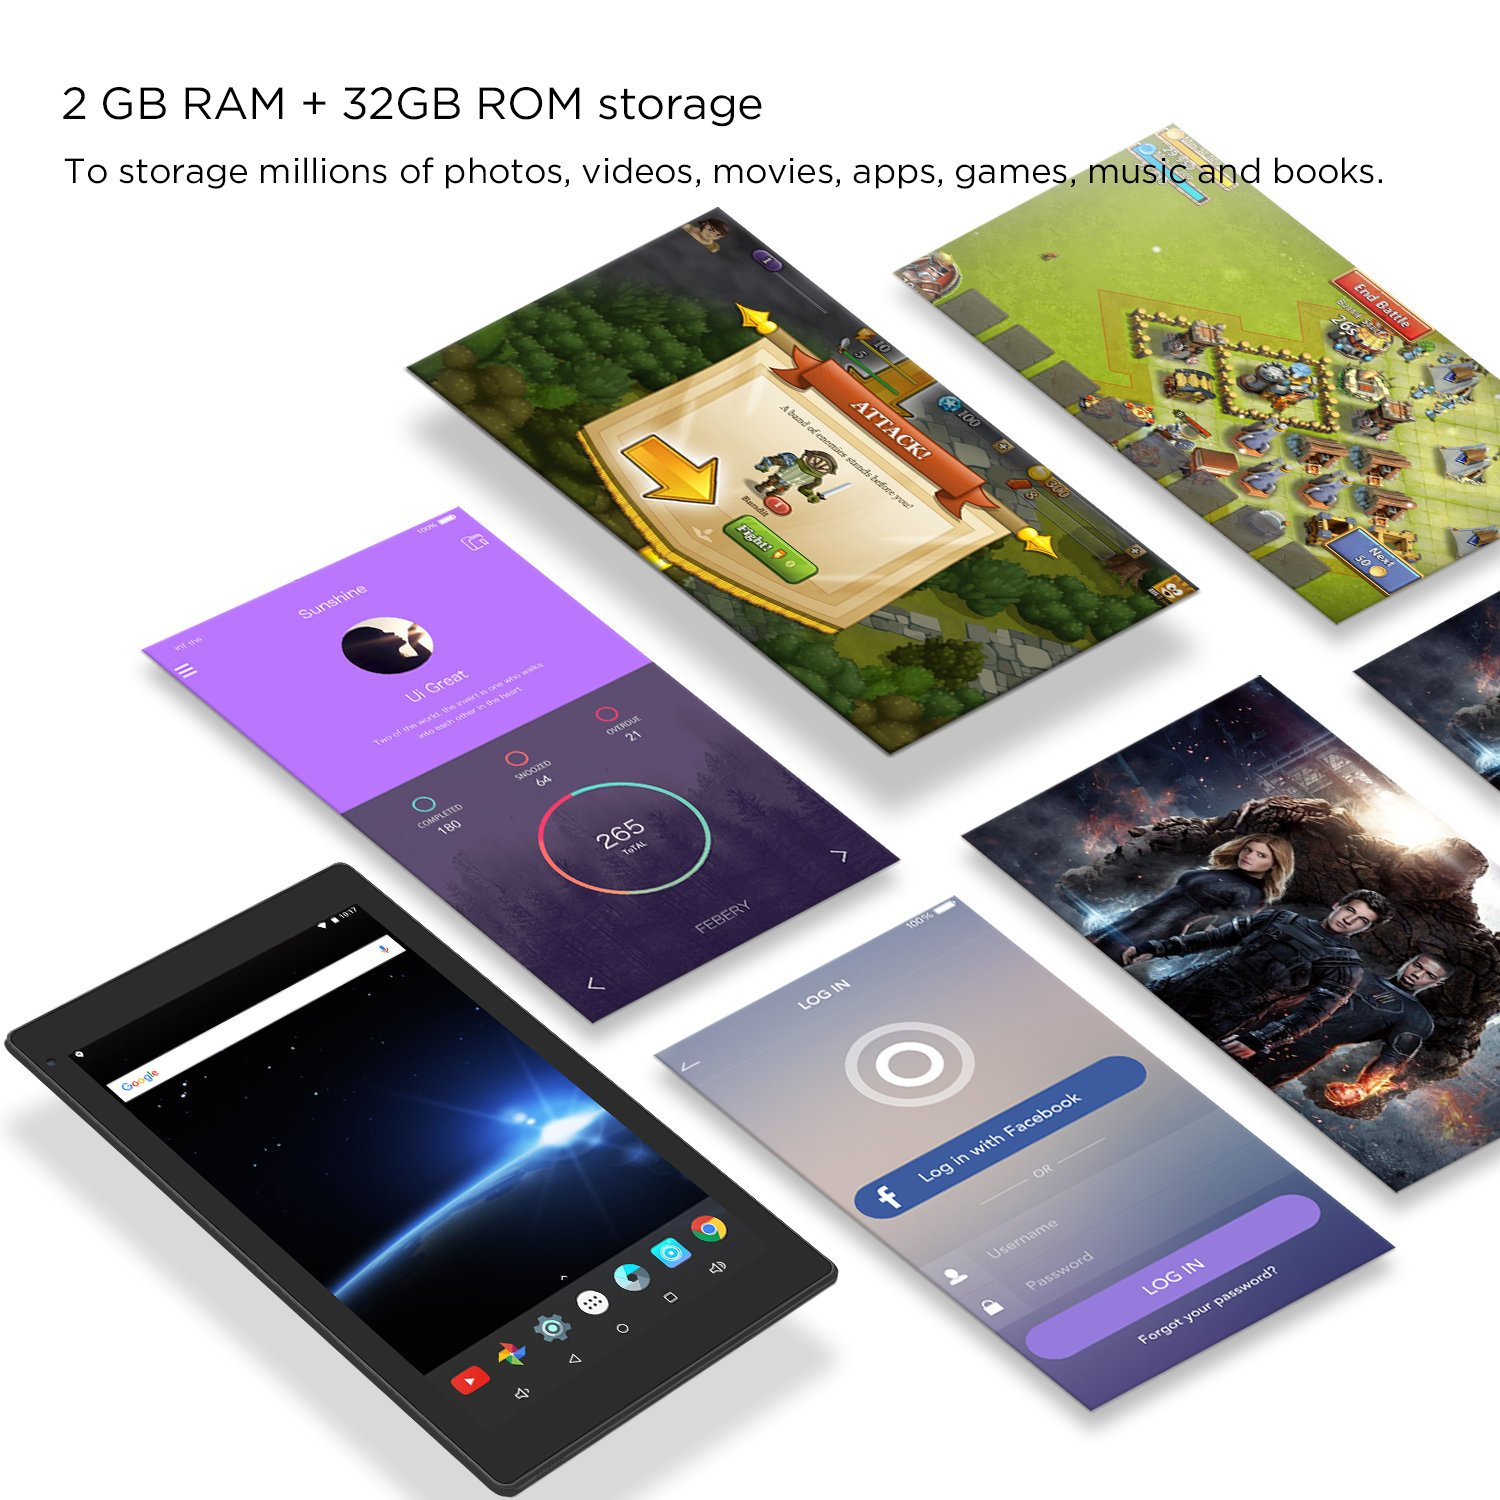 101 Google Android 71 Tablet 2gb 32gb 1200x1920 Ips Wiring Diagramselectrical Photosmovies Photo Albums Ring Circuit Display Screen Bluetooth 40 Dual Cameras Irulu Expro 4 Plus X4